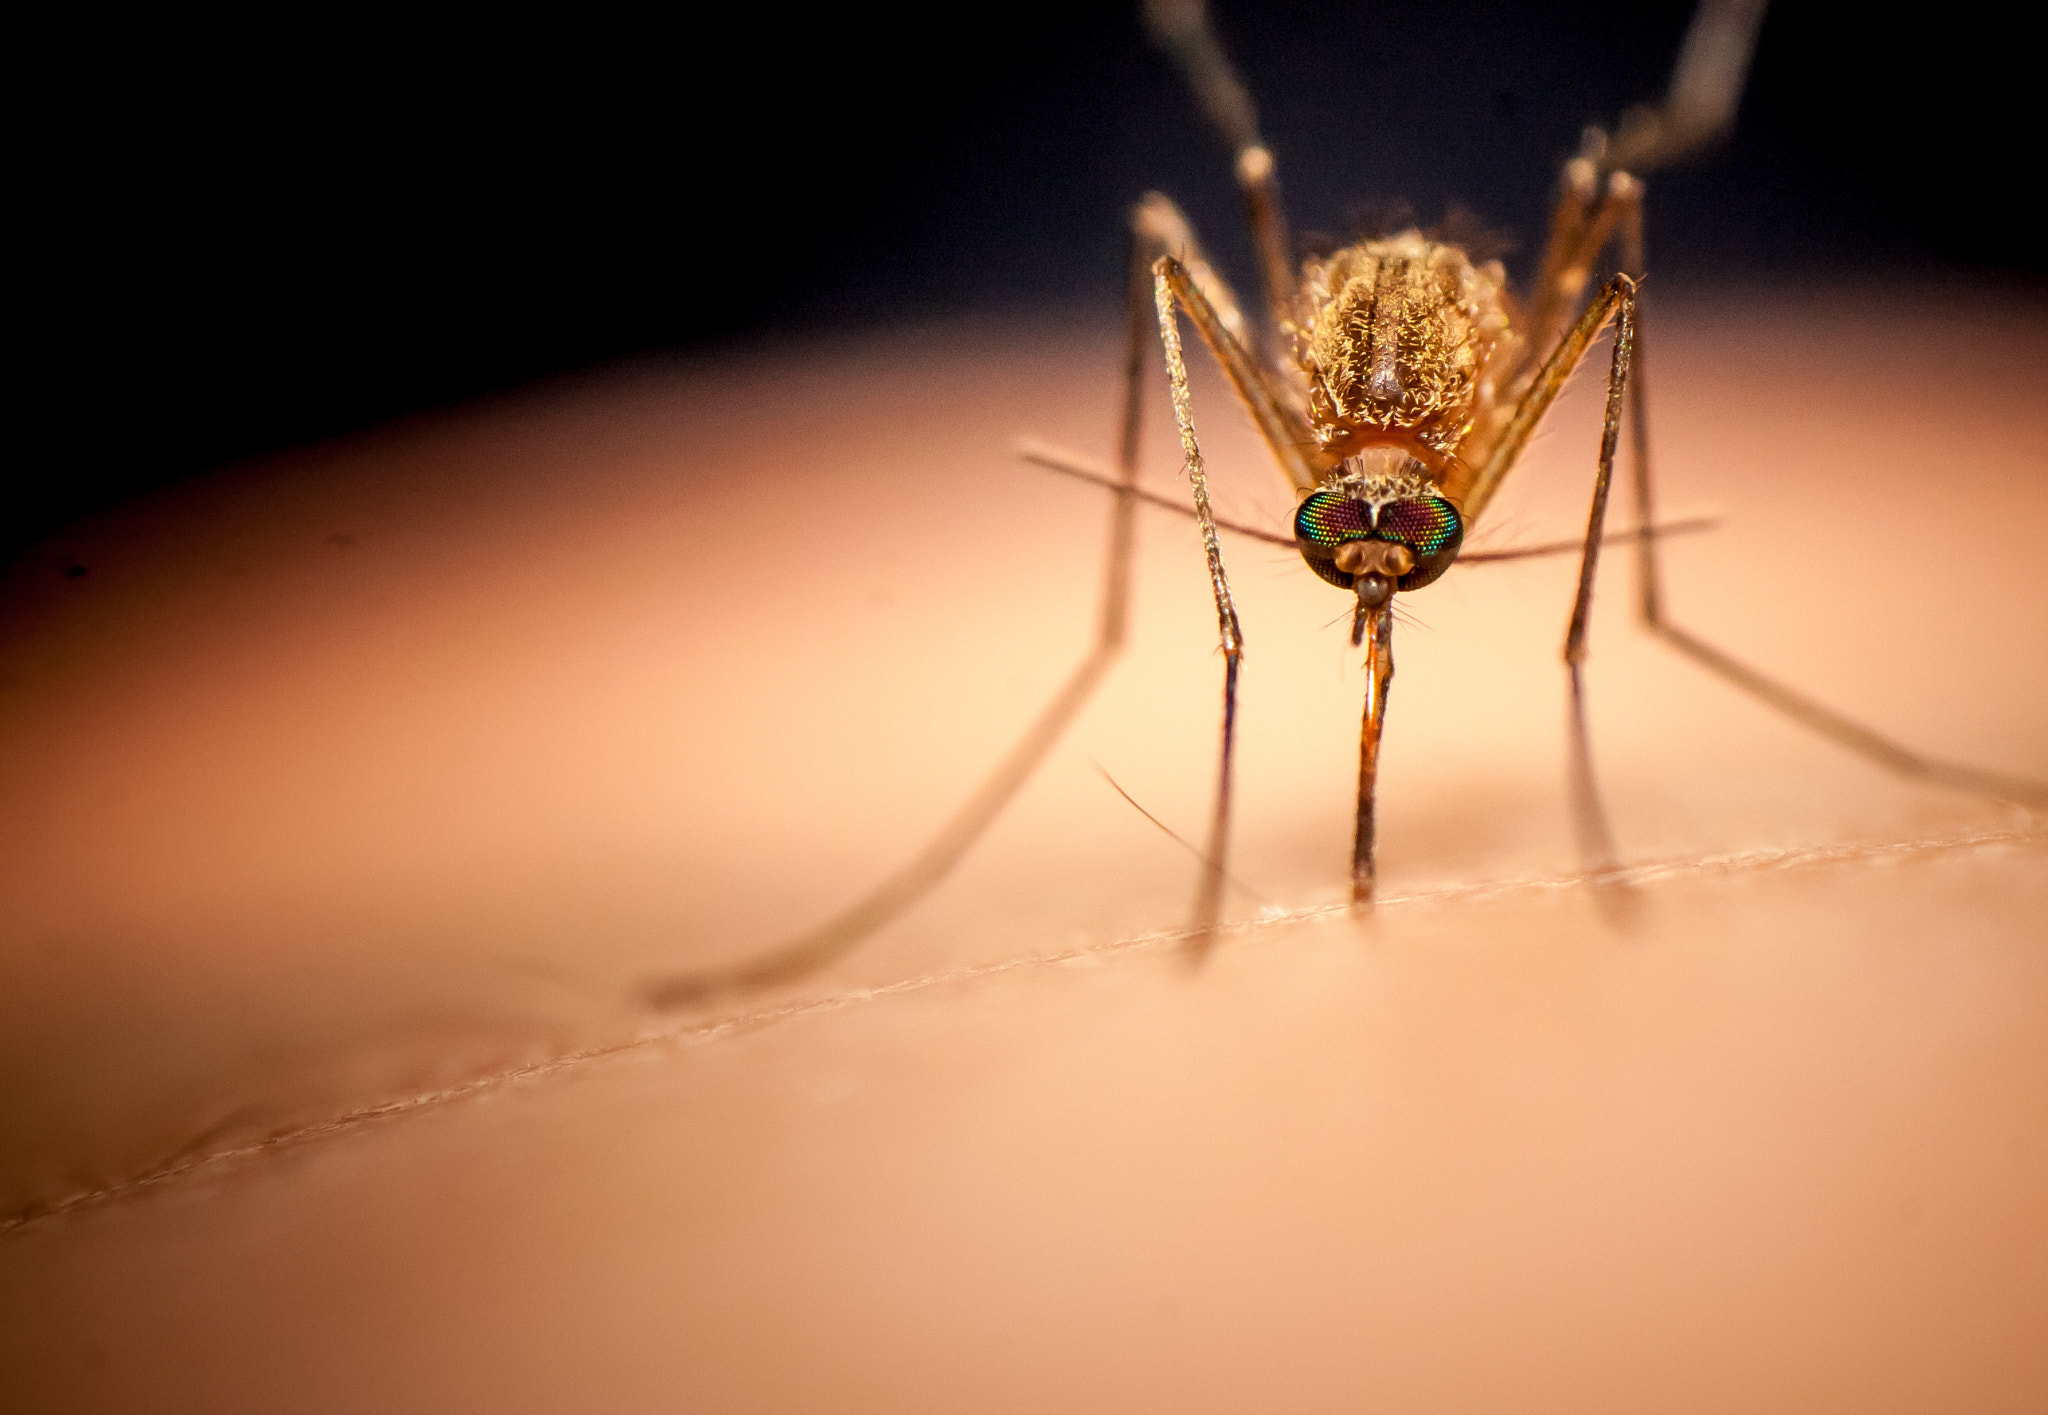 Photograph Mosquito under injection by Man Inthe Street on 500px